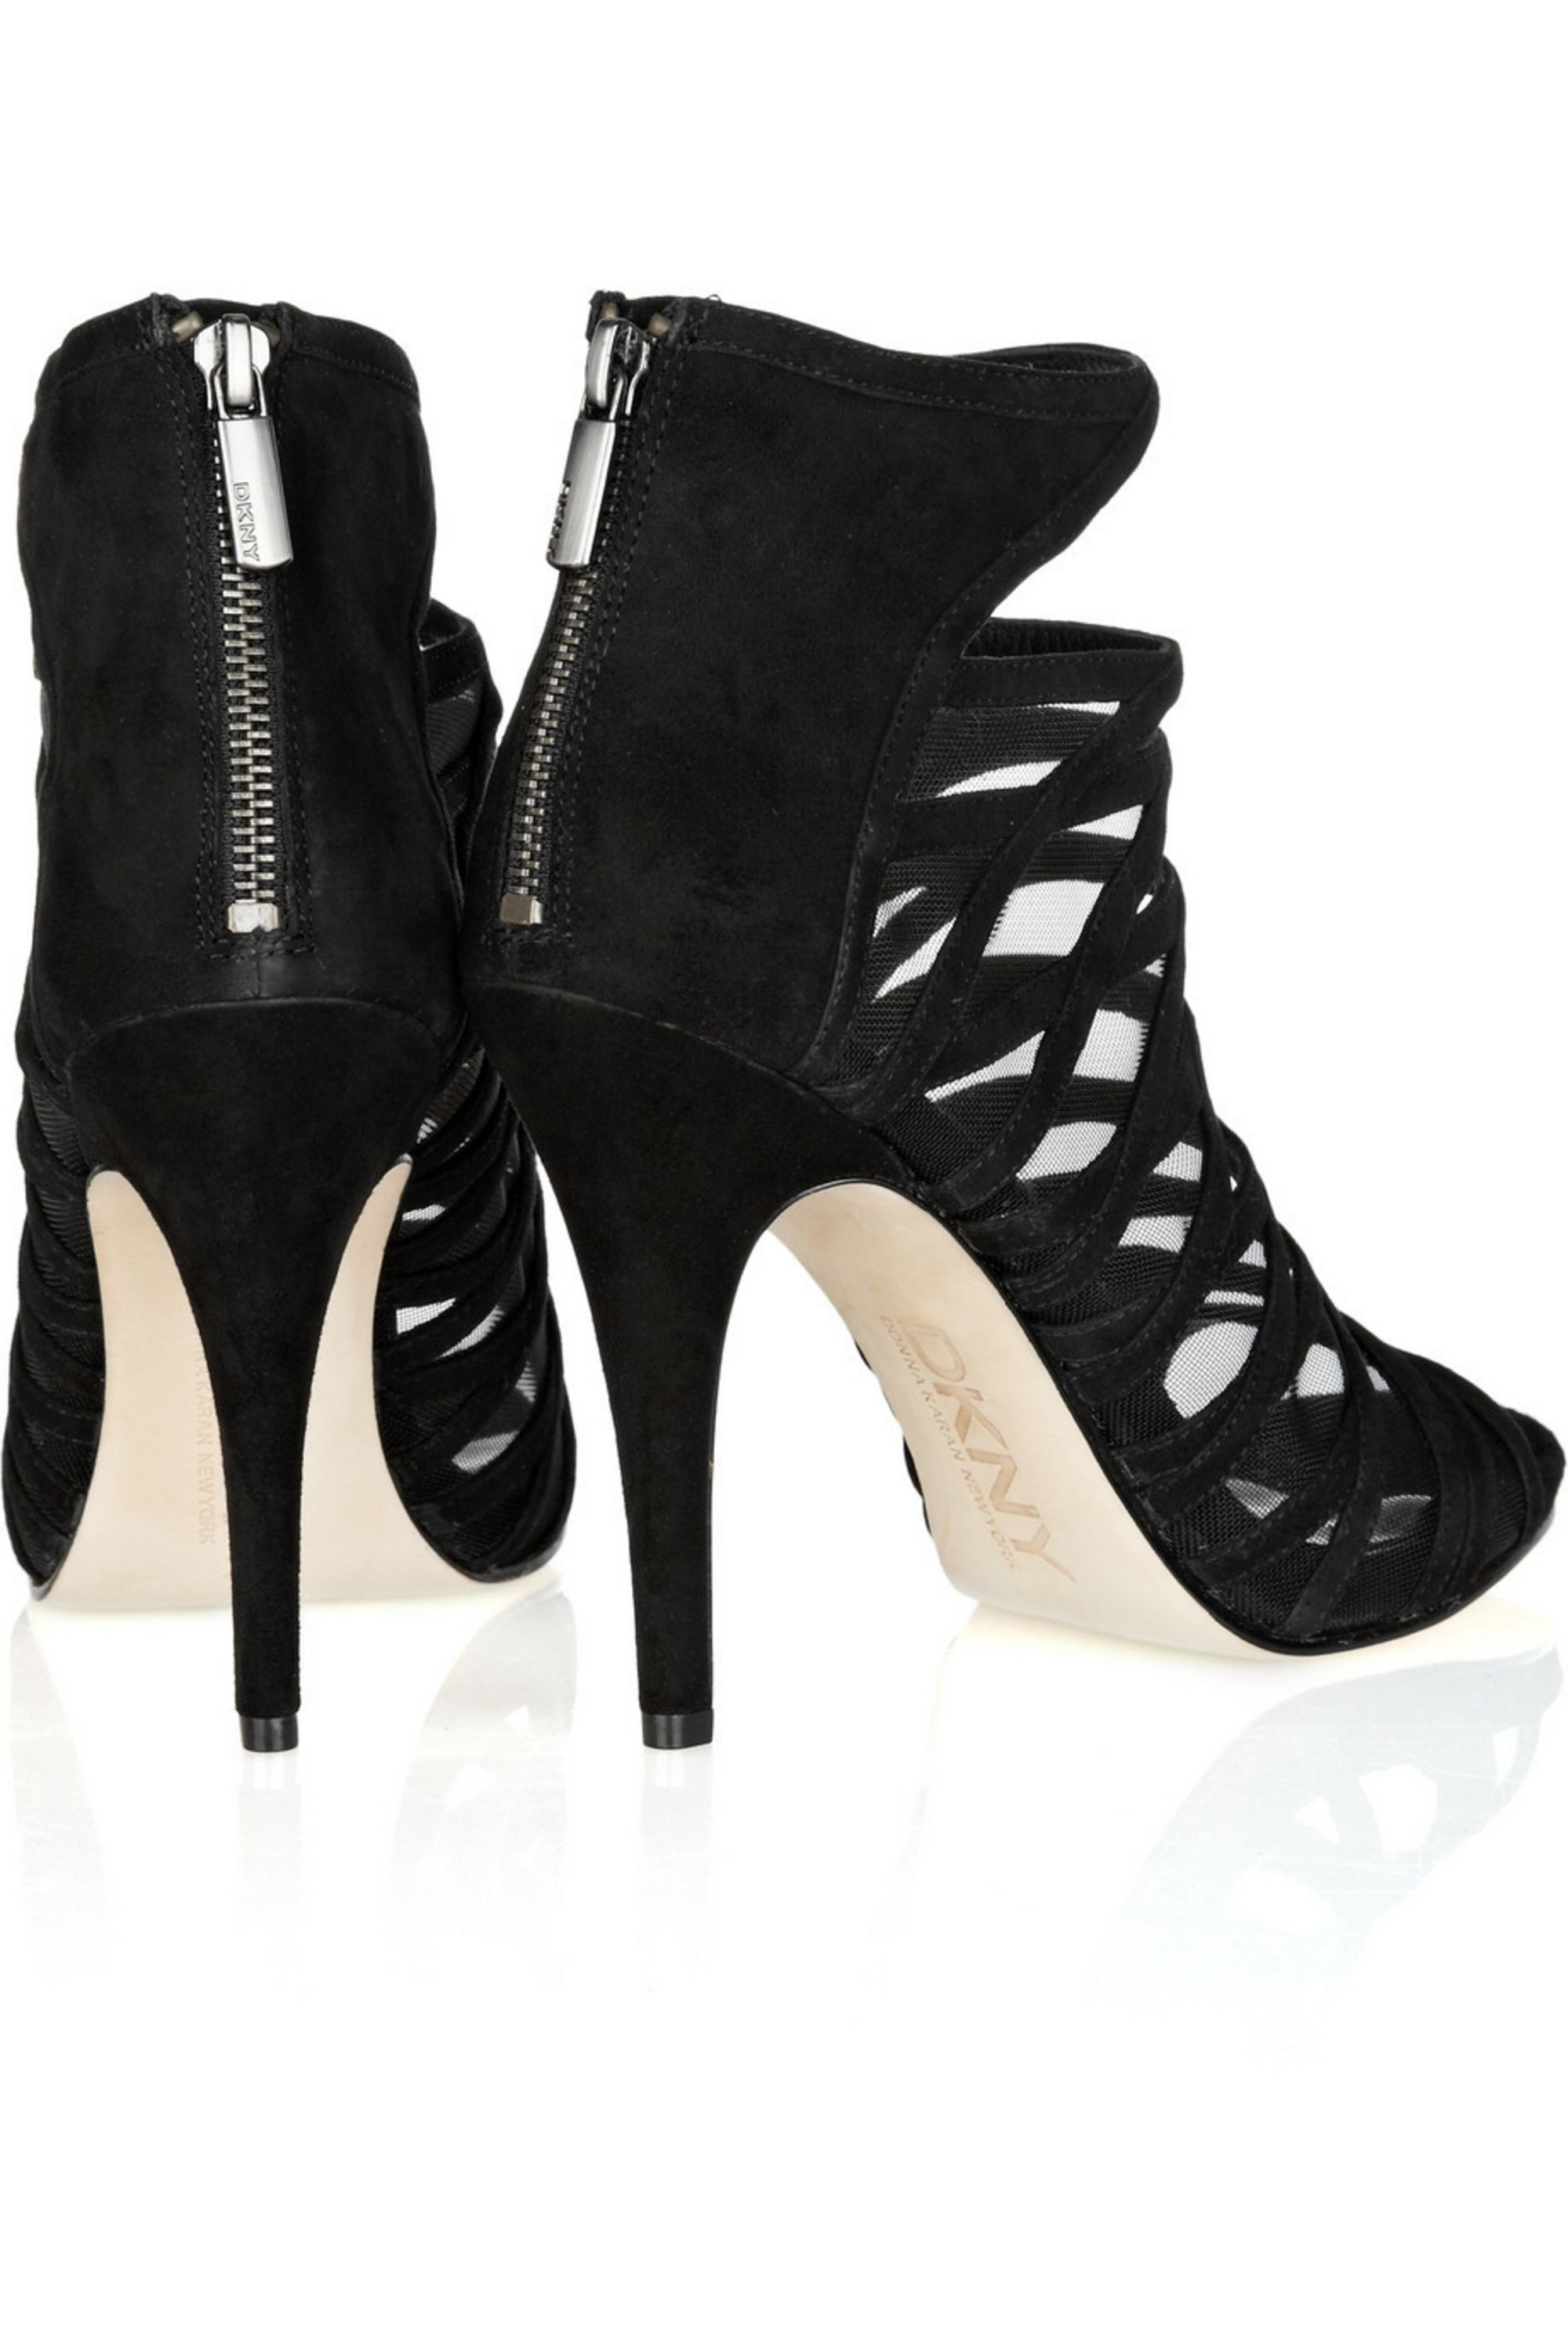 DKNY Ava suede cage sandals